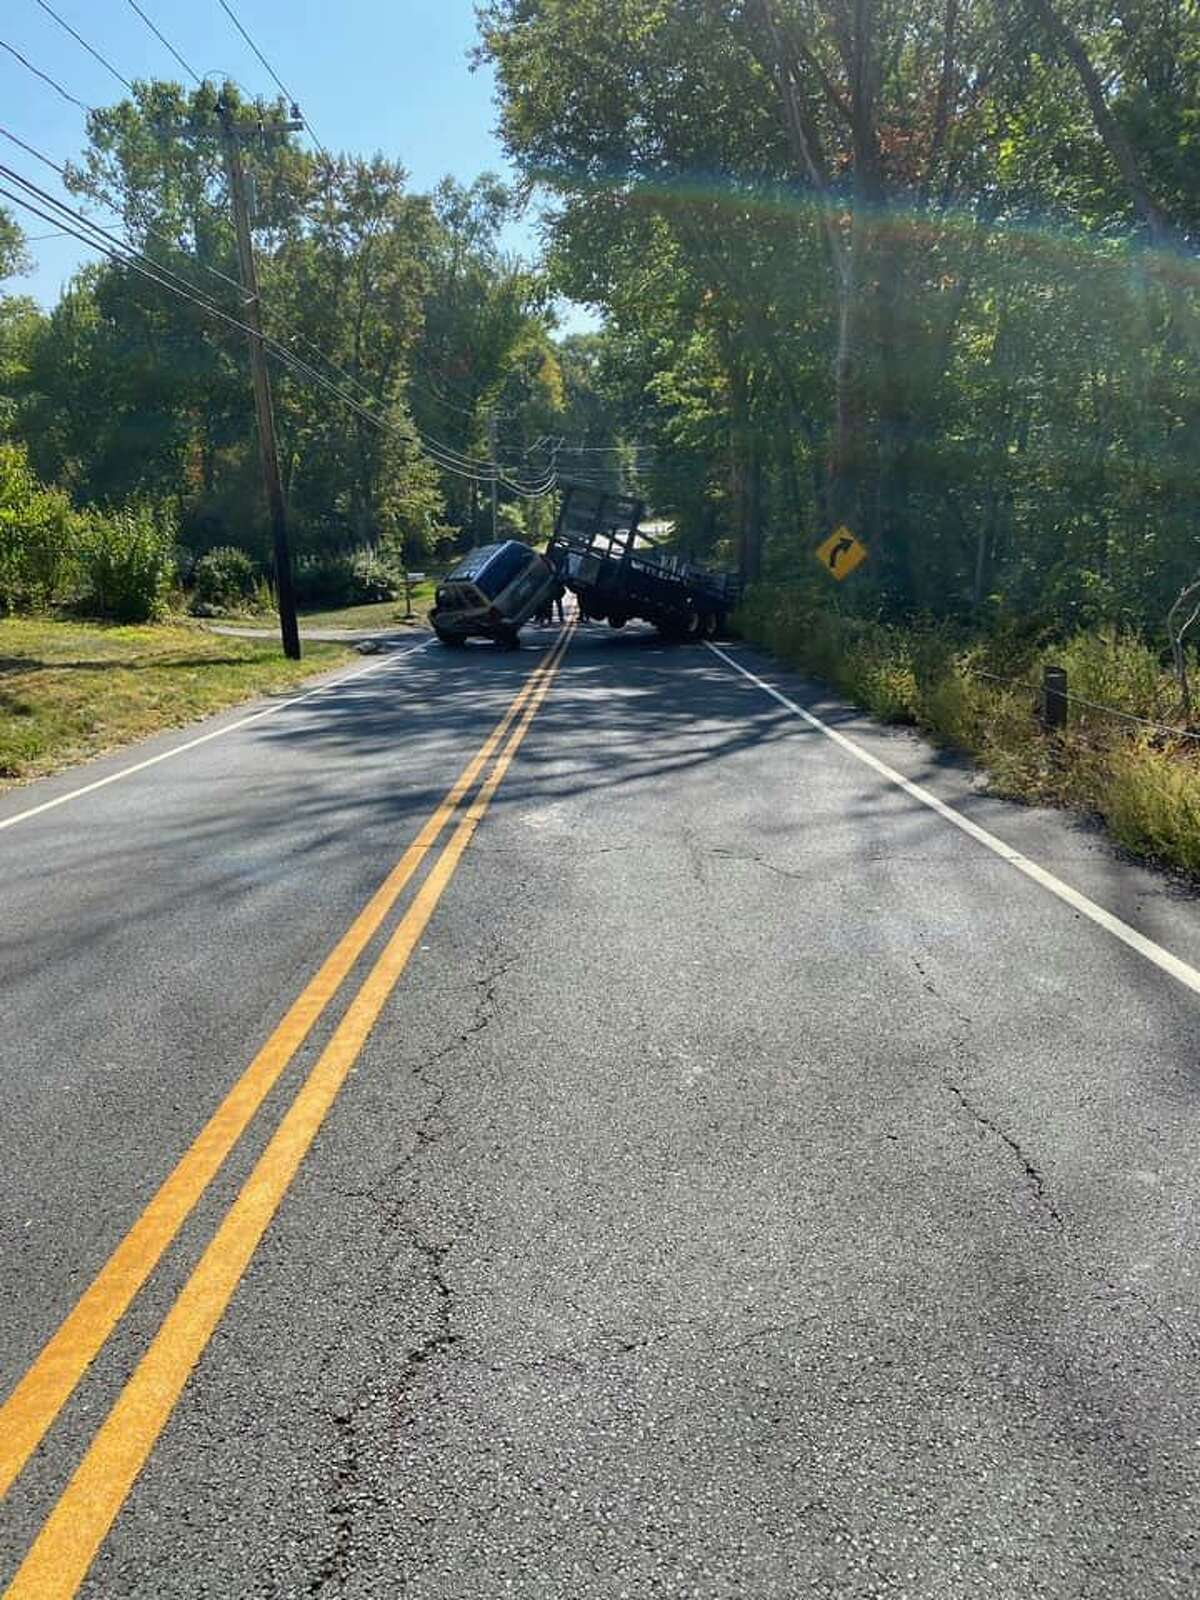 Route 74 was closed for about an hour after a passenger car towing a trailer jack-knifed in South Windsor Conn. Wednesday, Sept. 23.